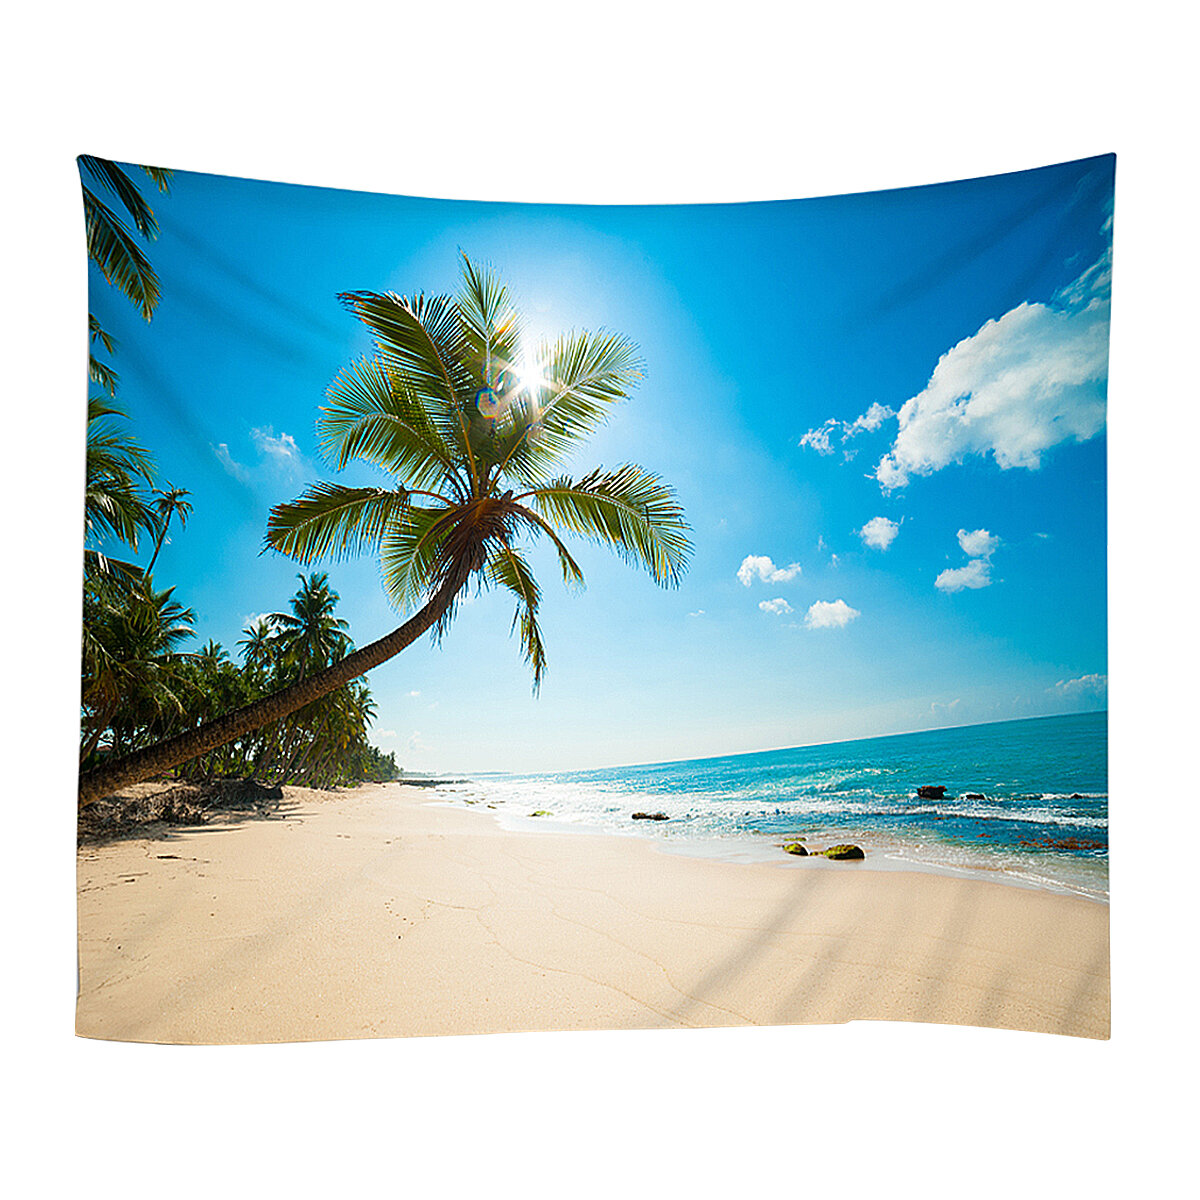 Blue Sea Water Sky Beach Shore Seaside Home Decor Tapestry Blanket Polyester Fabric Wall Tapestries